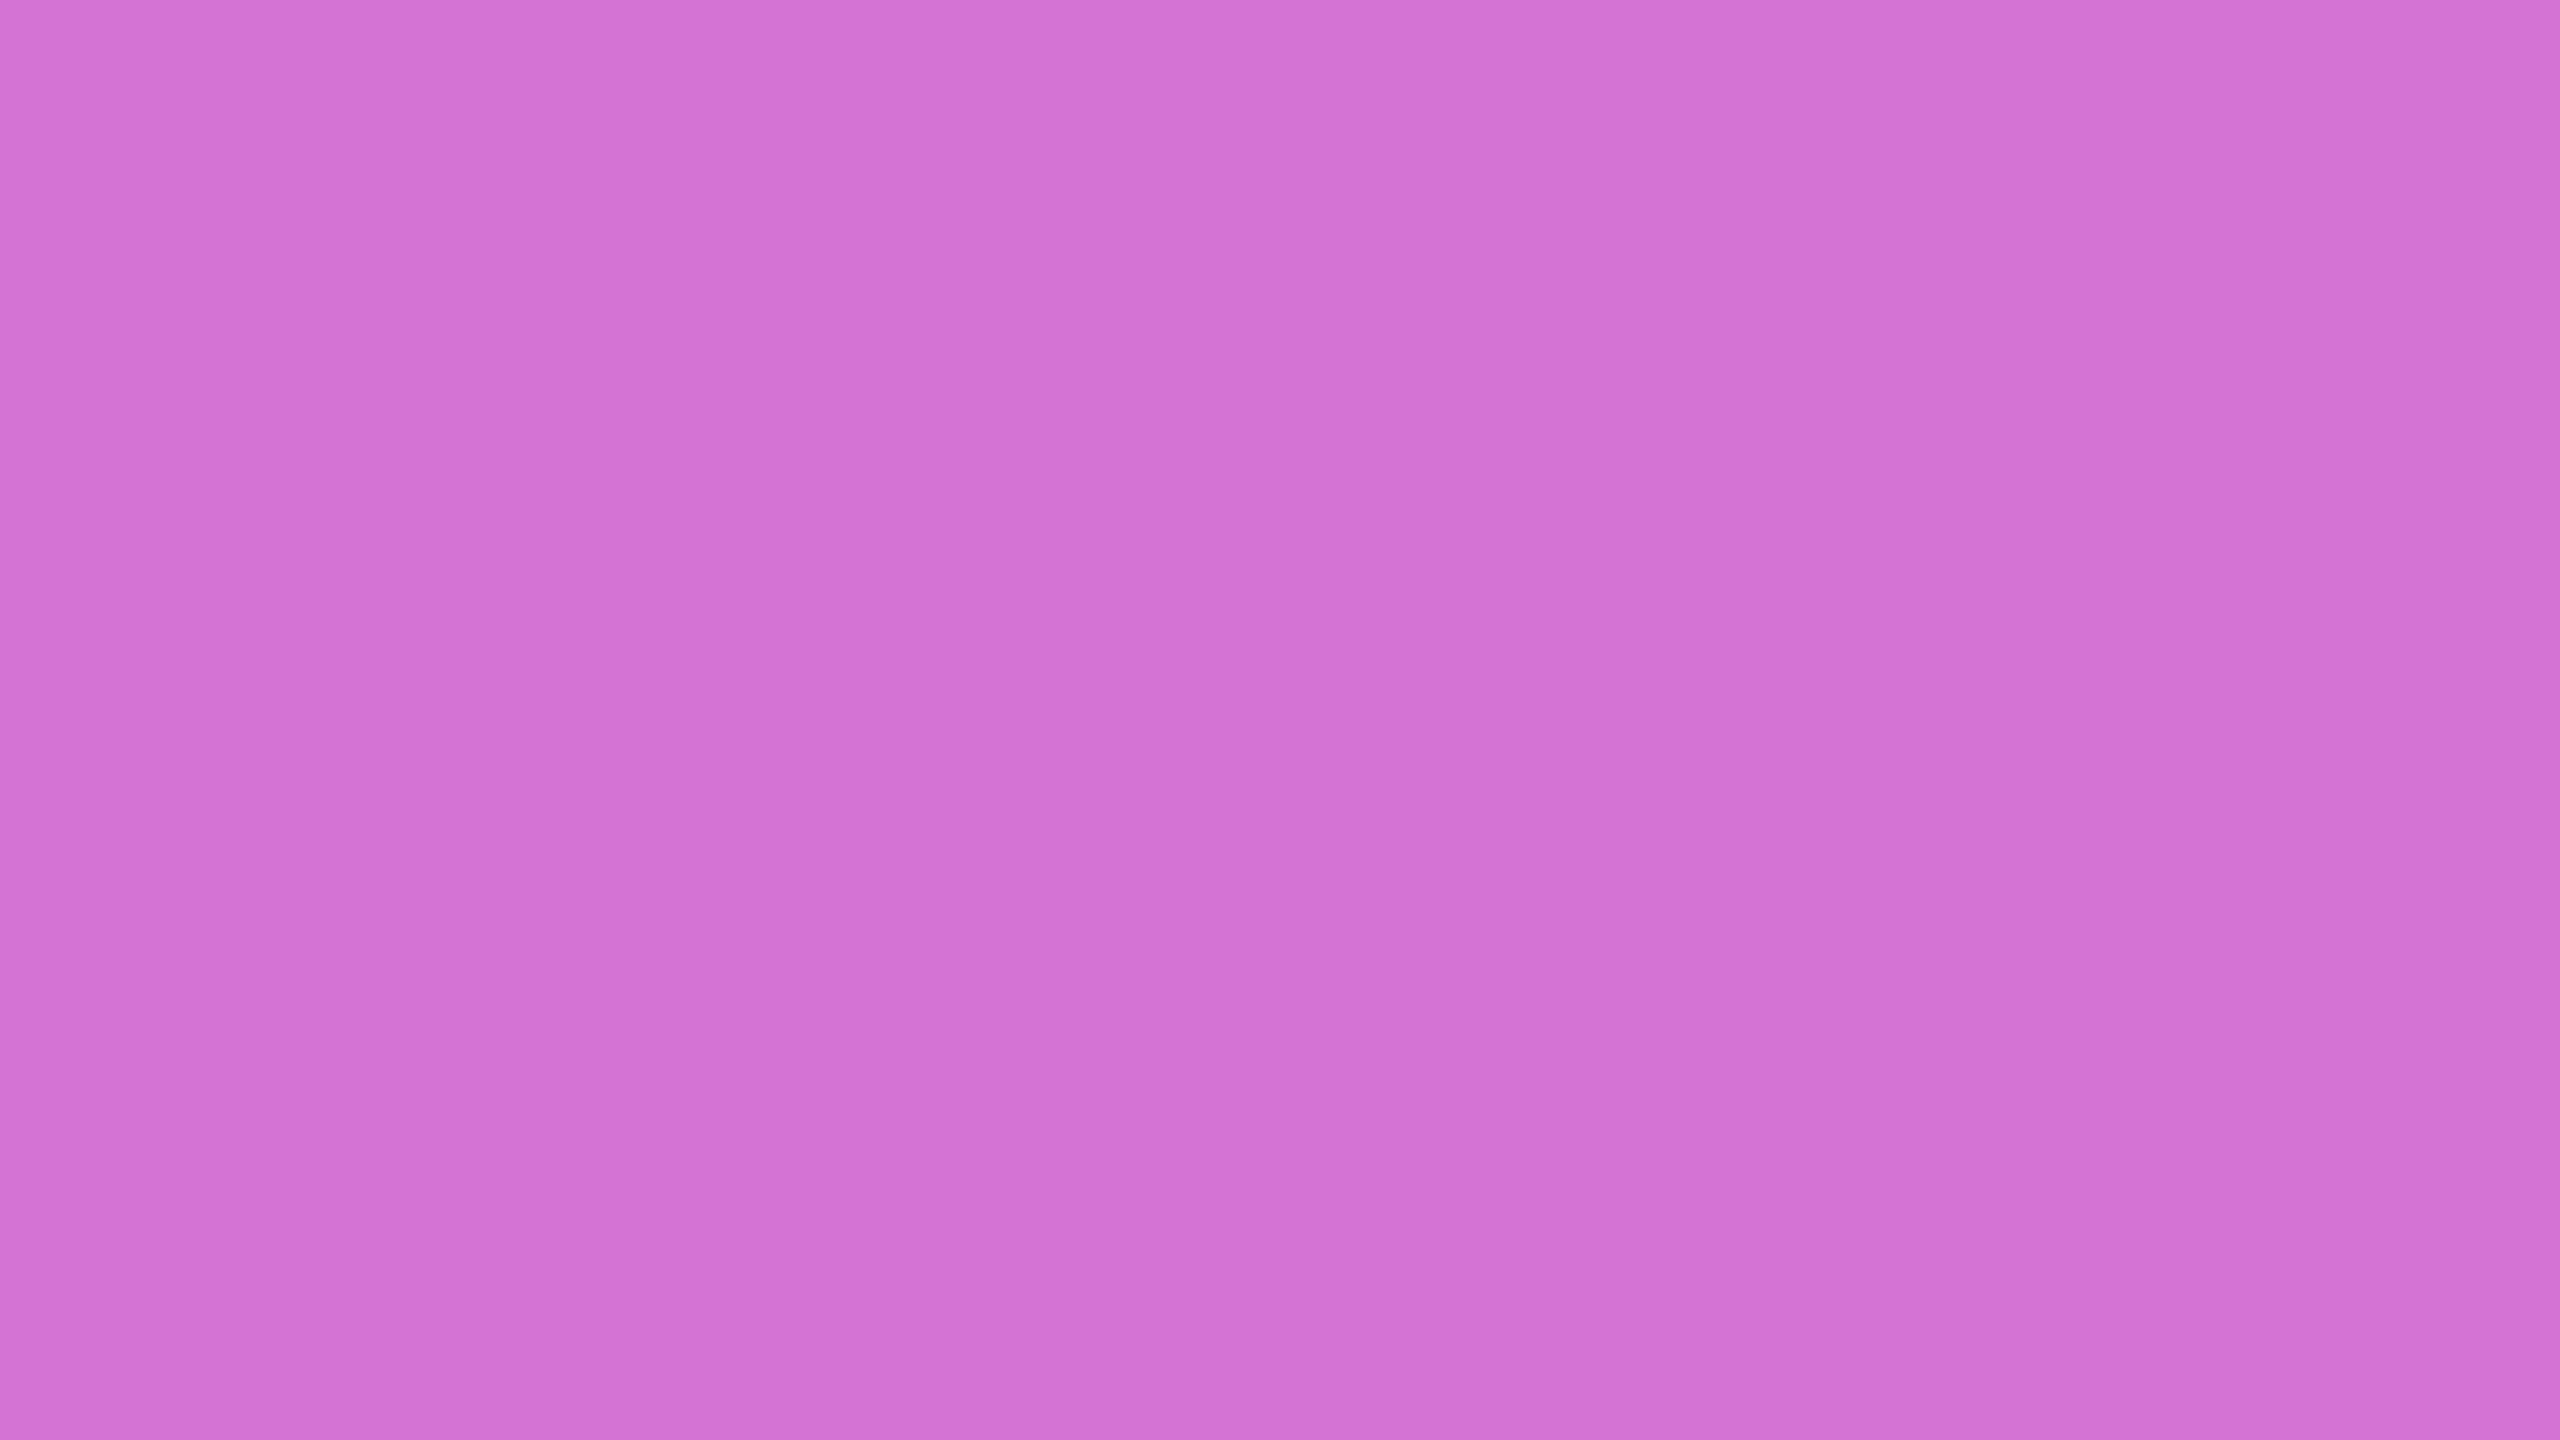 2560x1440 Deep Mauve Solid Color Background